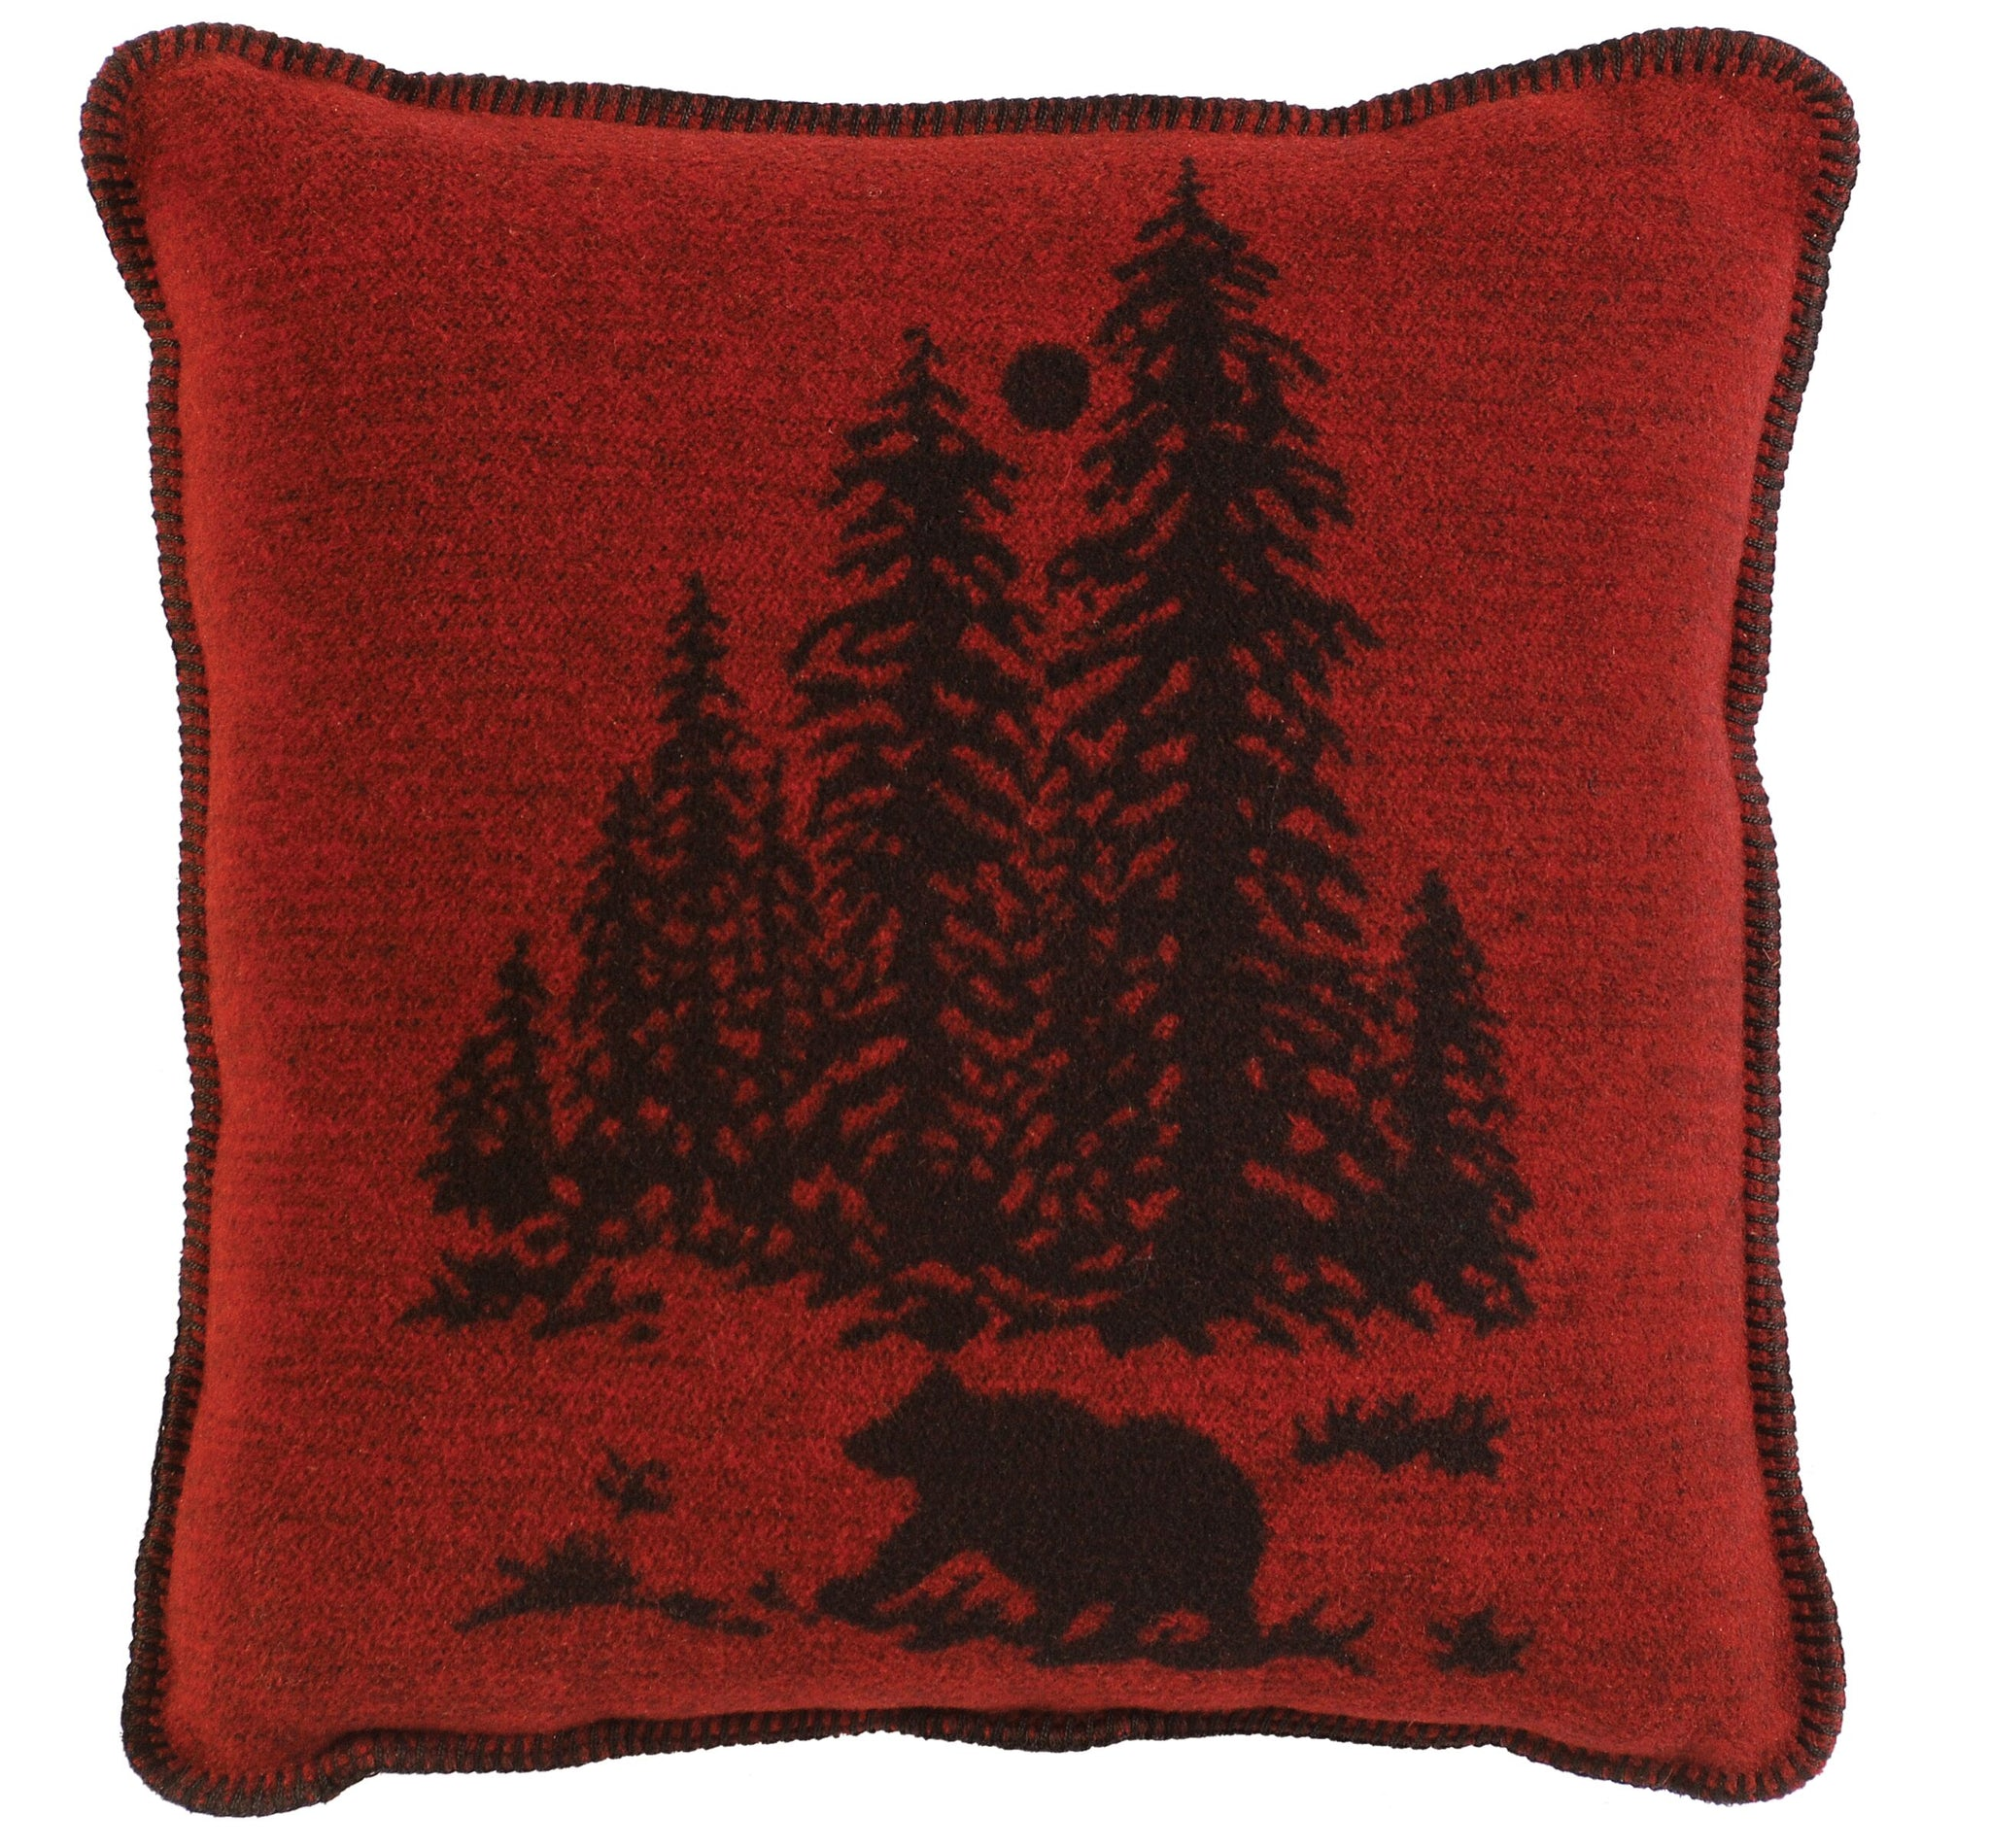 Wooded River Bear Pillow Wooded River - unique linens online